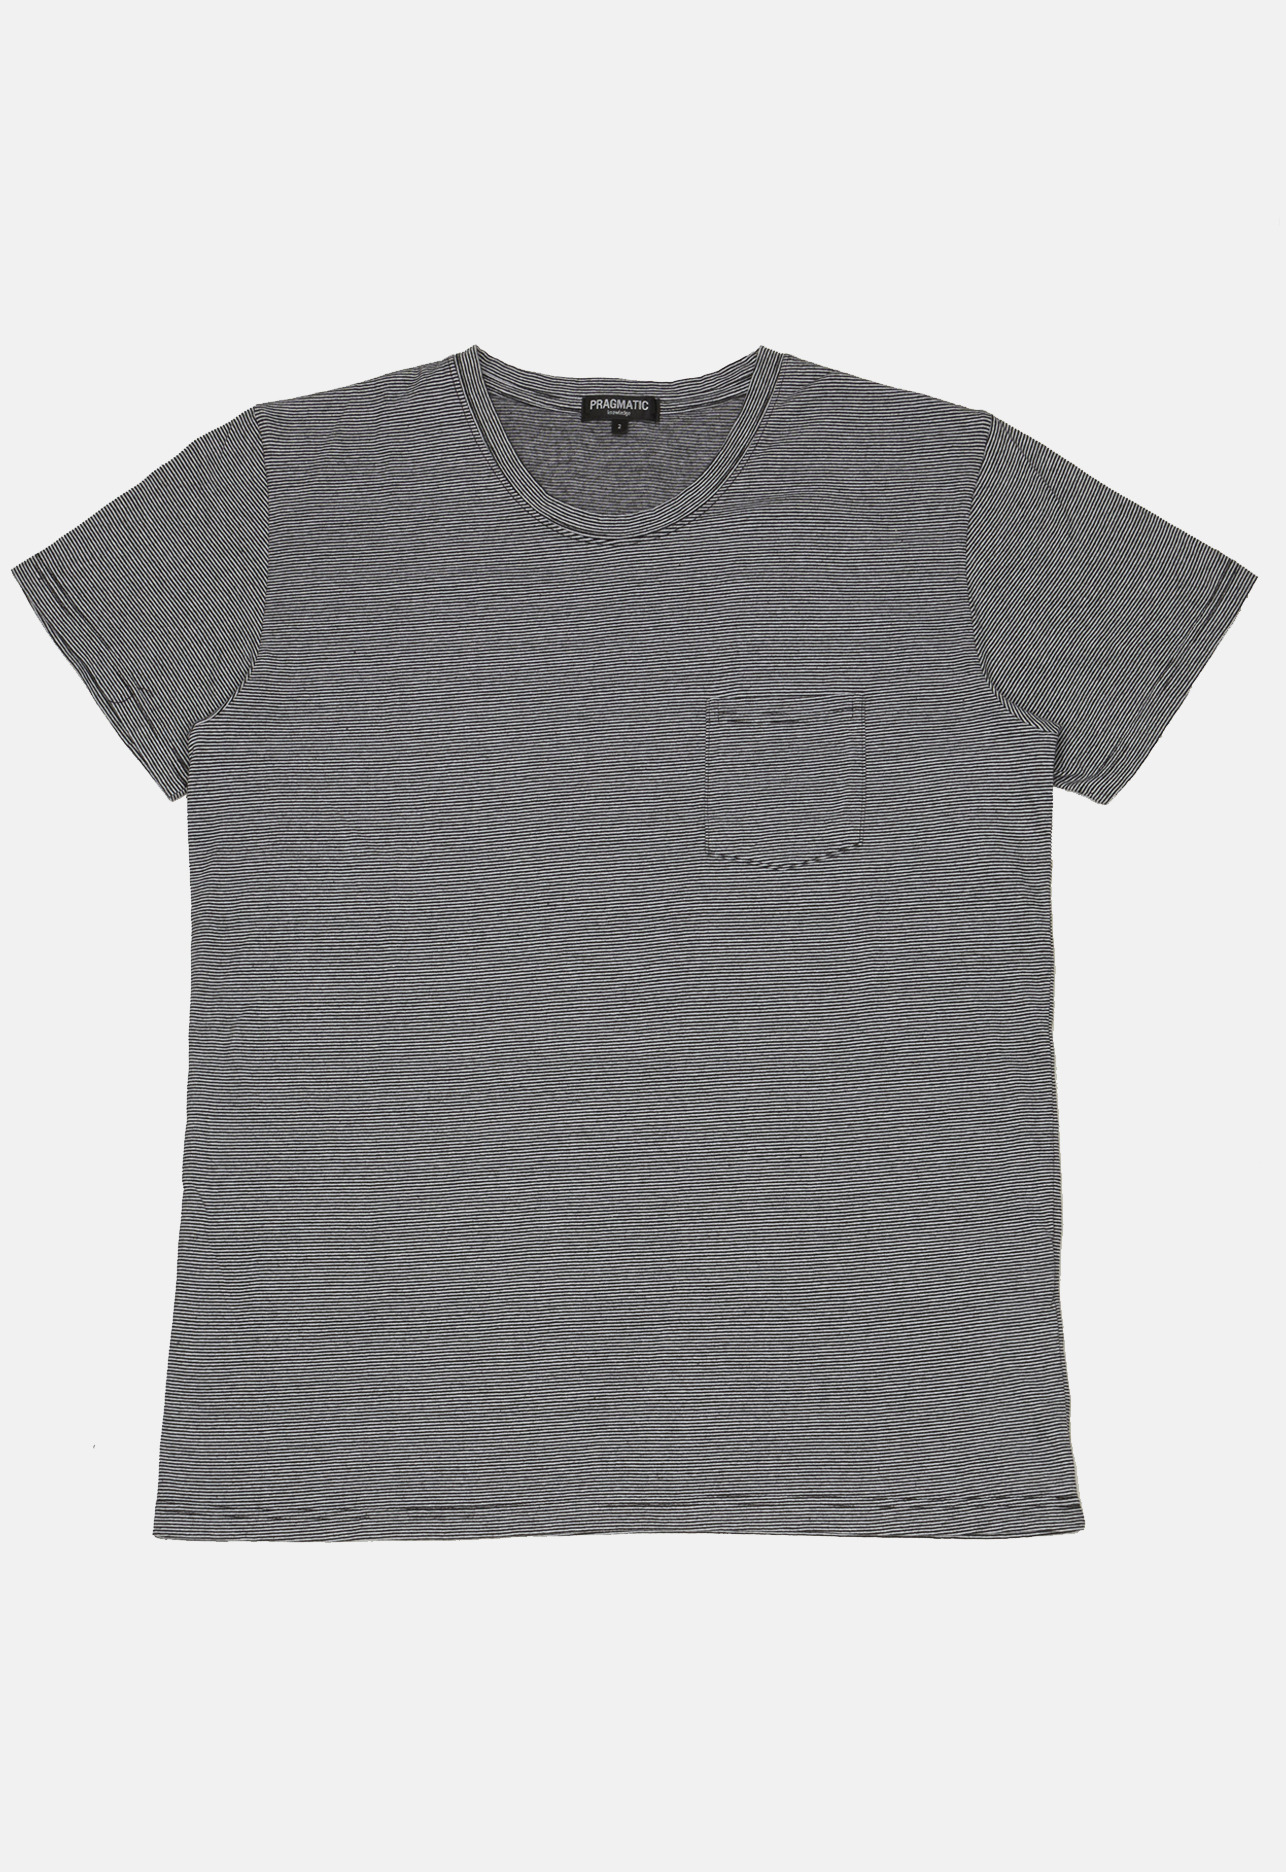 POCKET T-SHRITS BLACK